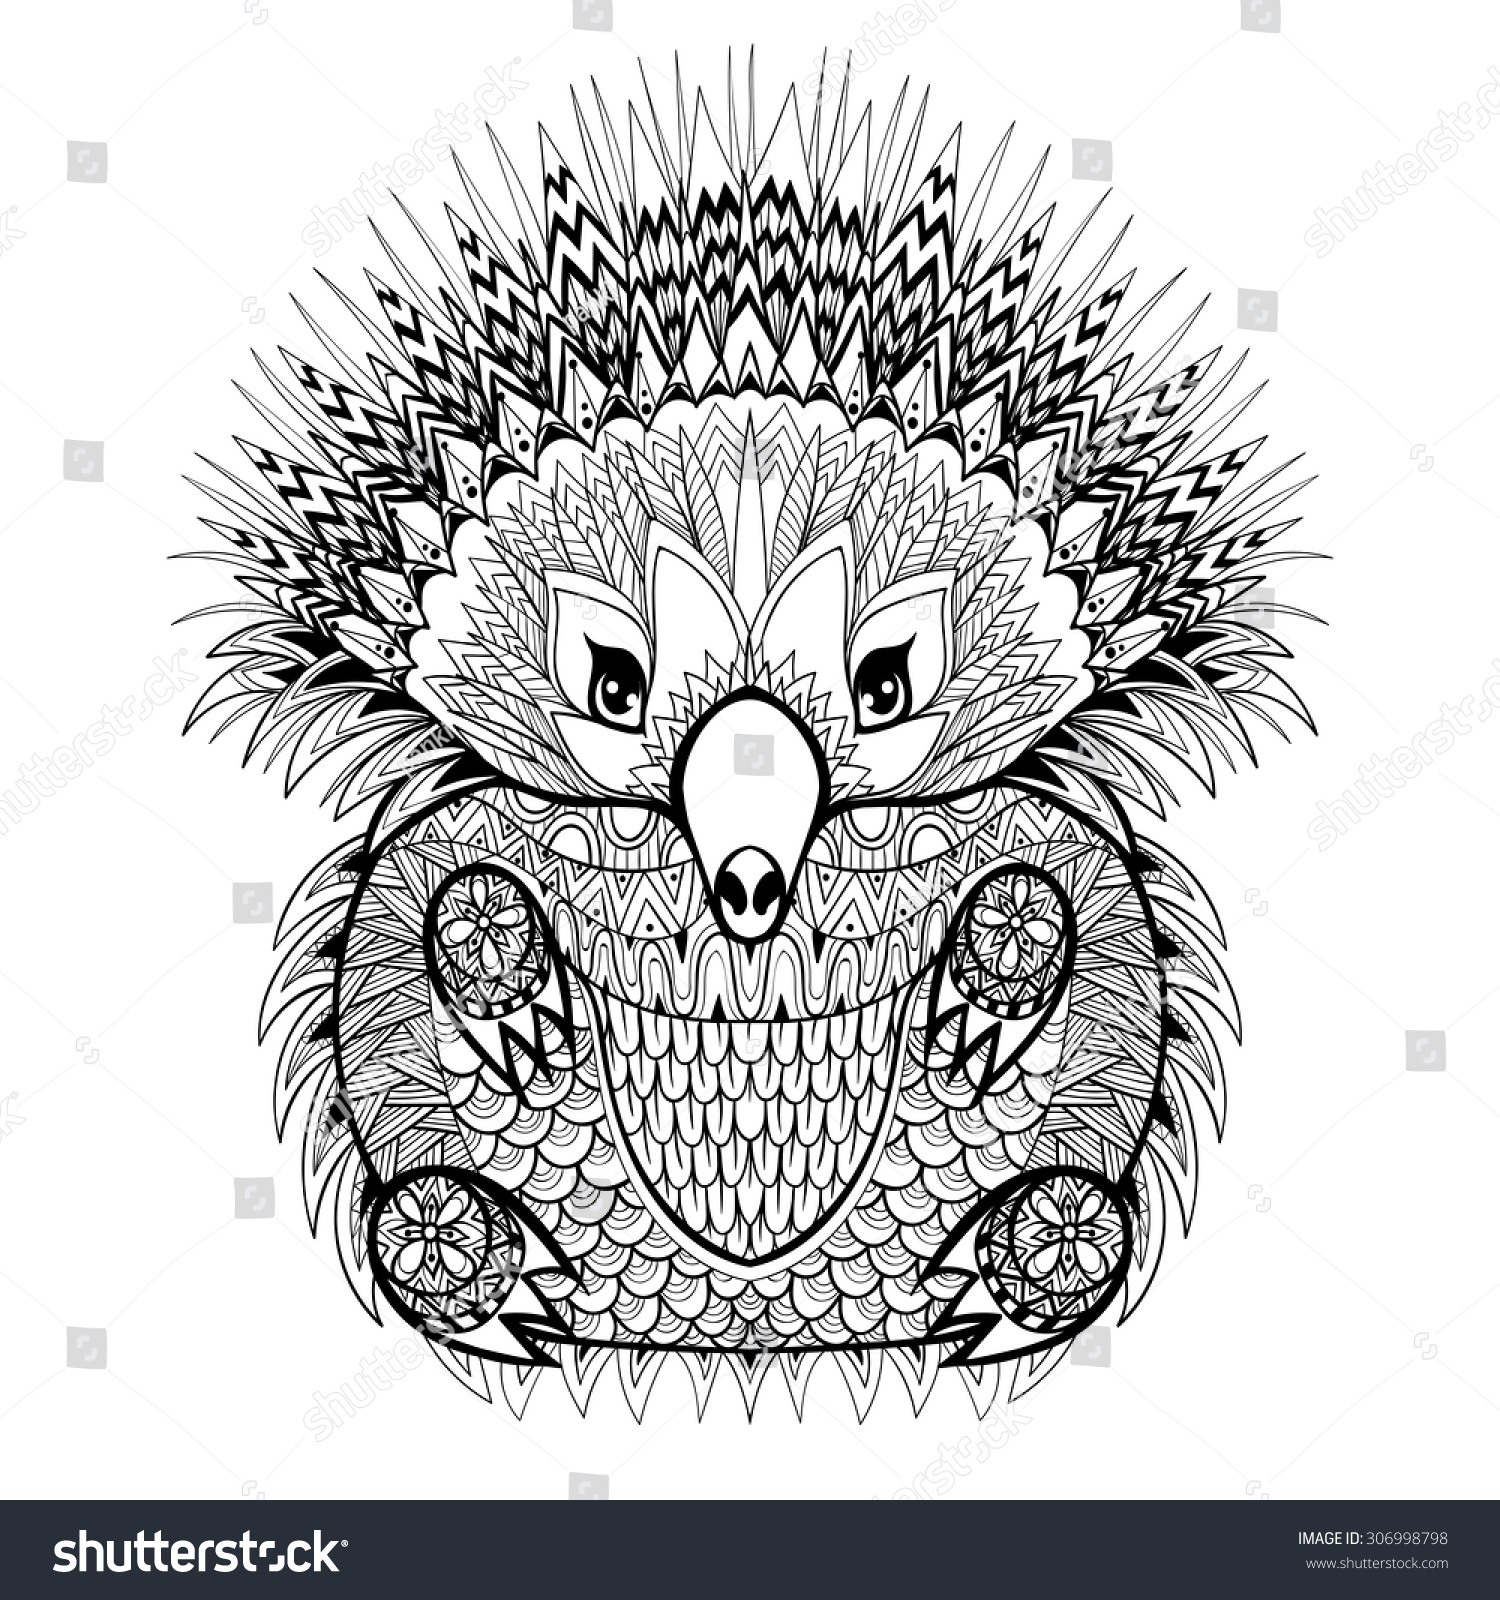 Coloring Pages Australian Animal Coloring Pages australian animals coloring pages eassume com hand drawn tribal totem echidna stock vector 306998798